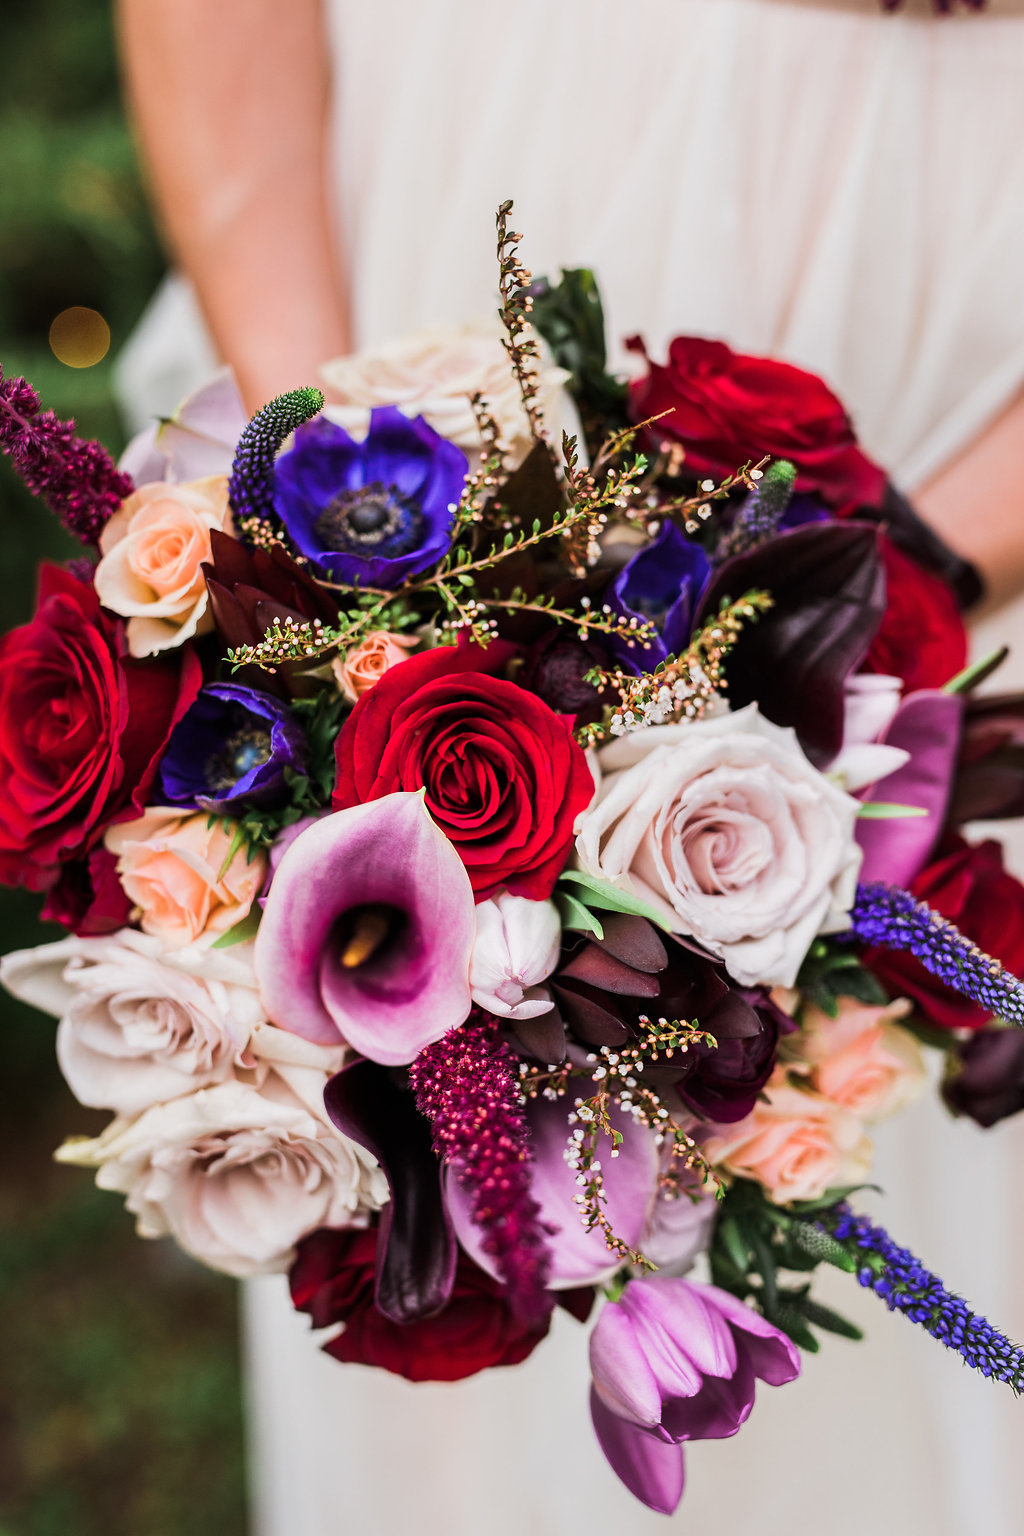 colorful fall wedding bouquets - photo by Katie Ricard Photography https://ruffledblog.com/dramatic-woodland-wedding-inspiration-with-burgundy-accents